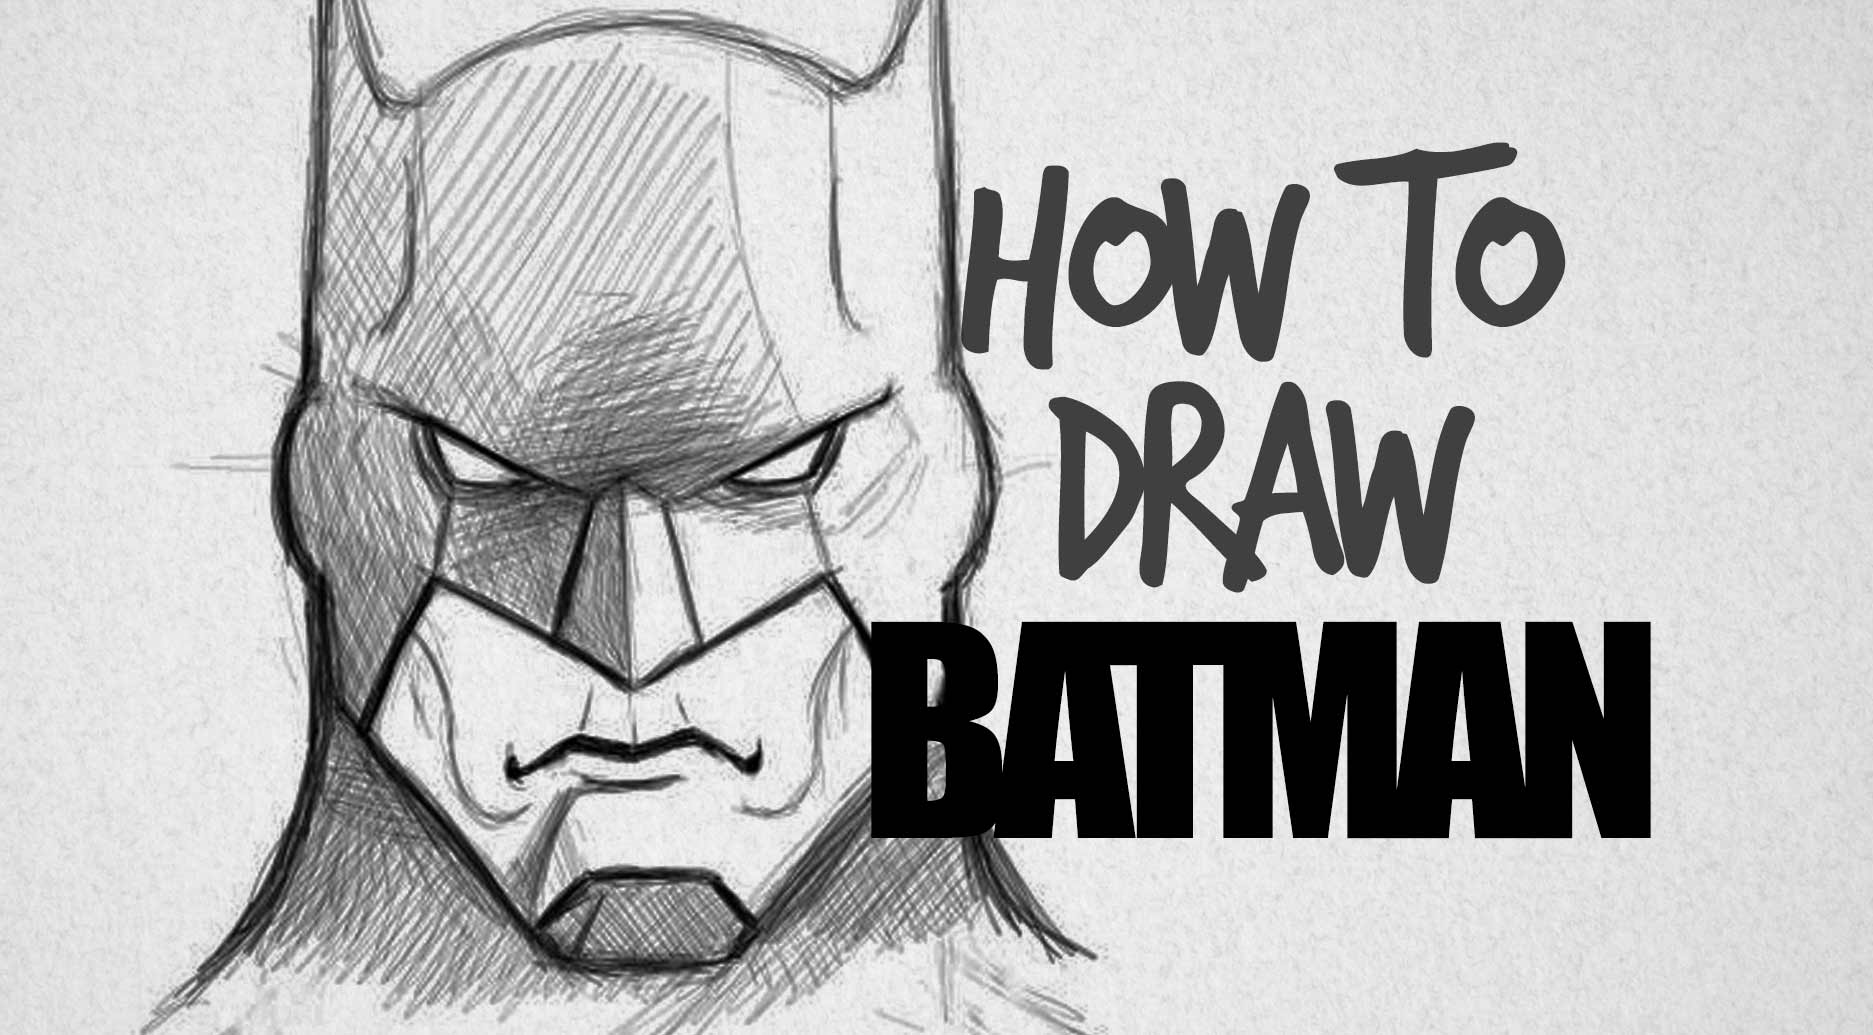 How to draw Batman - Drawing Factory